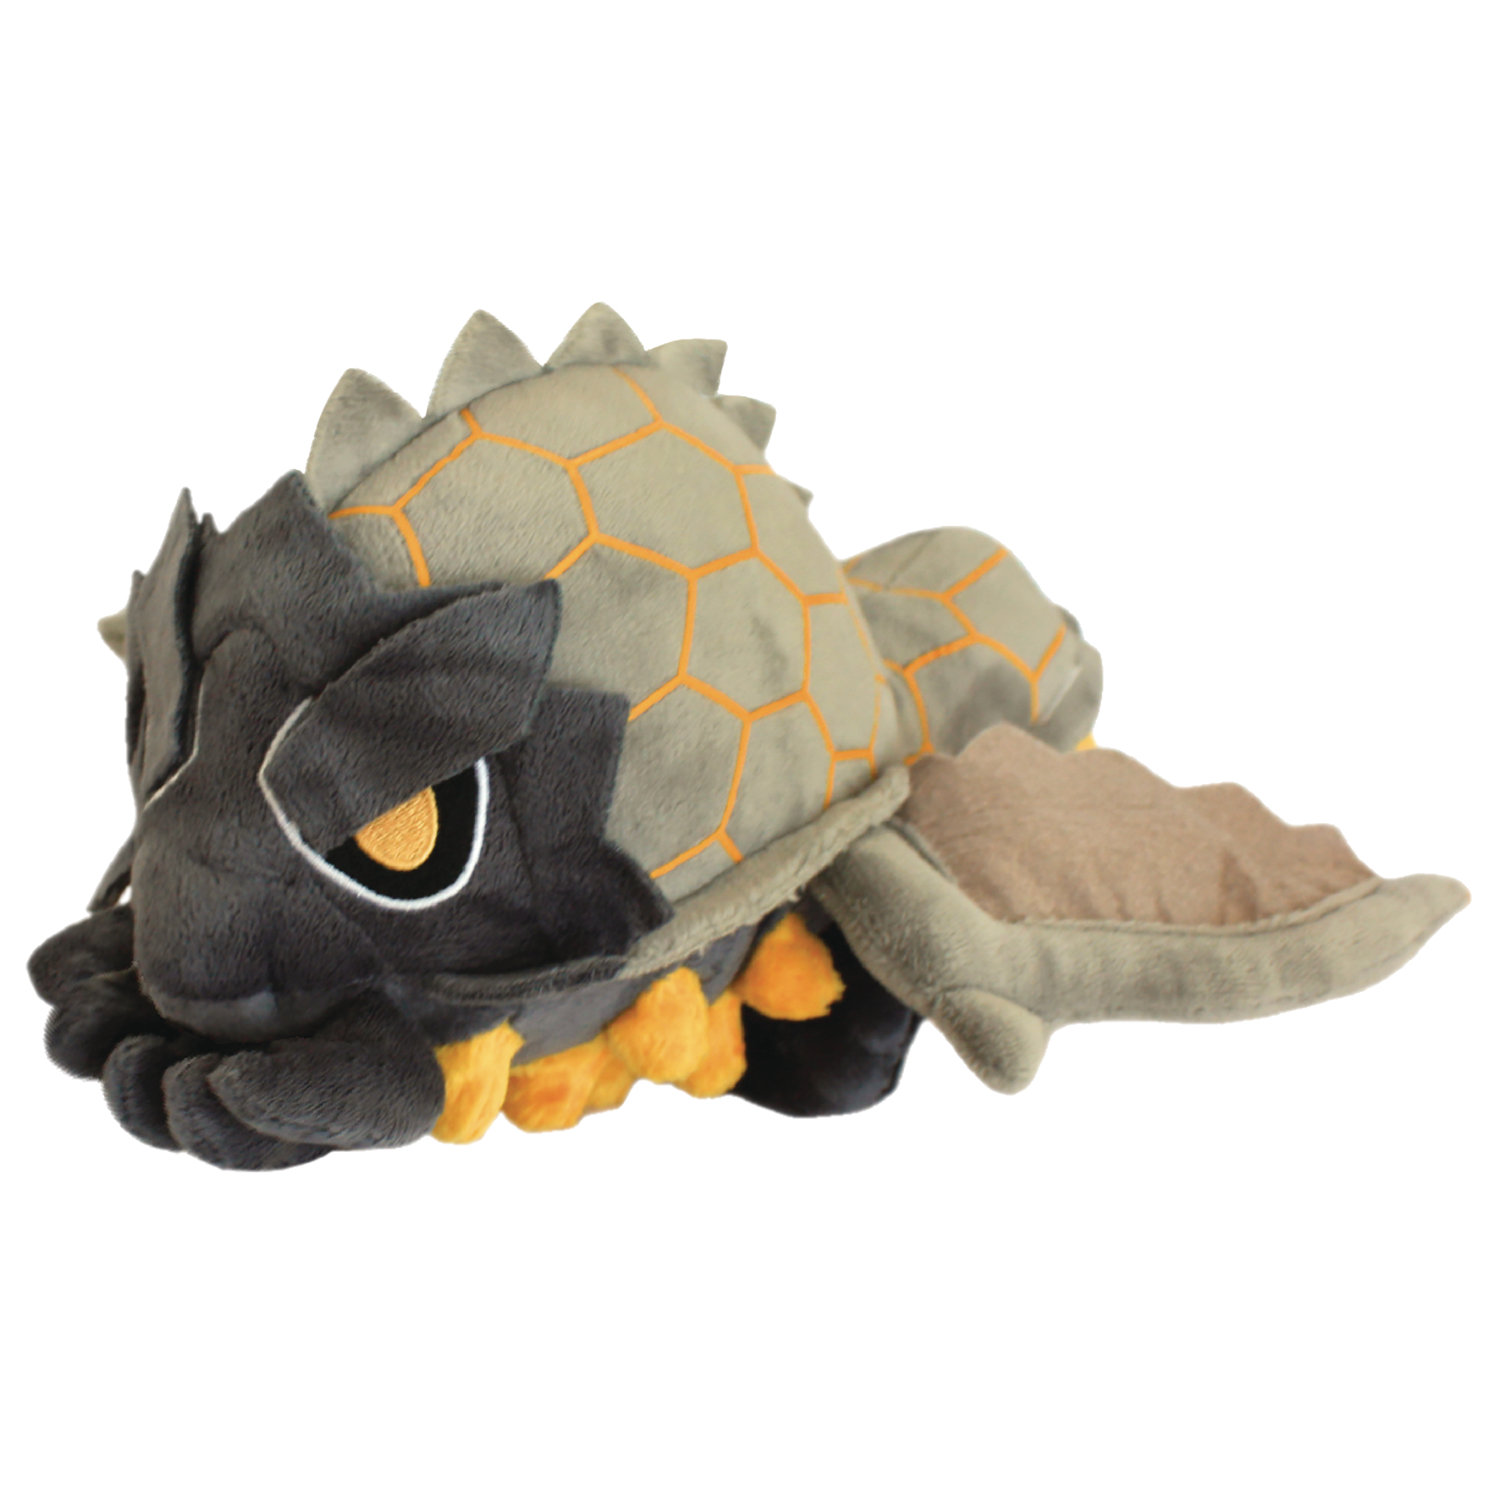 MONSTER HUNTER WORLD BAZELGEUSE PLUSH